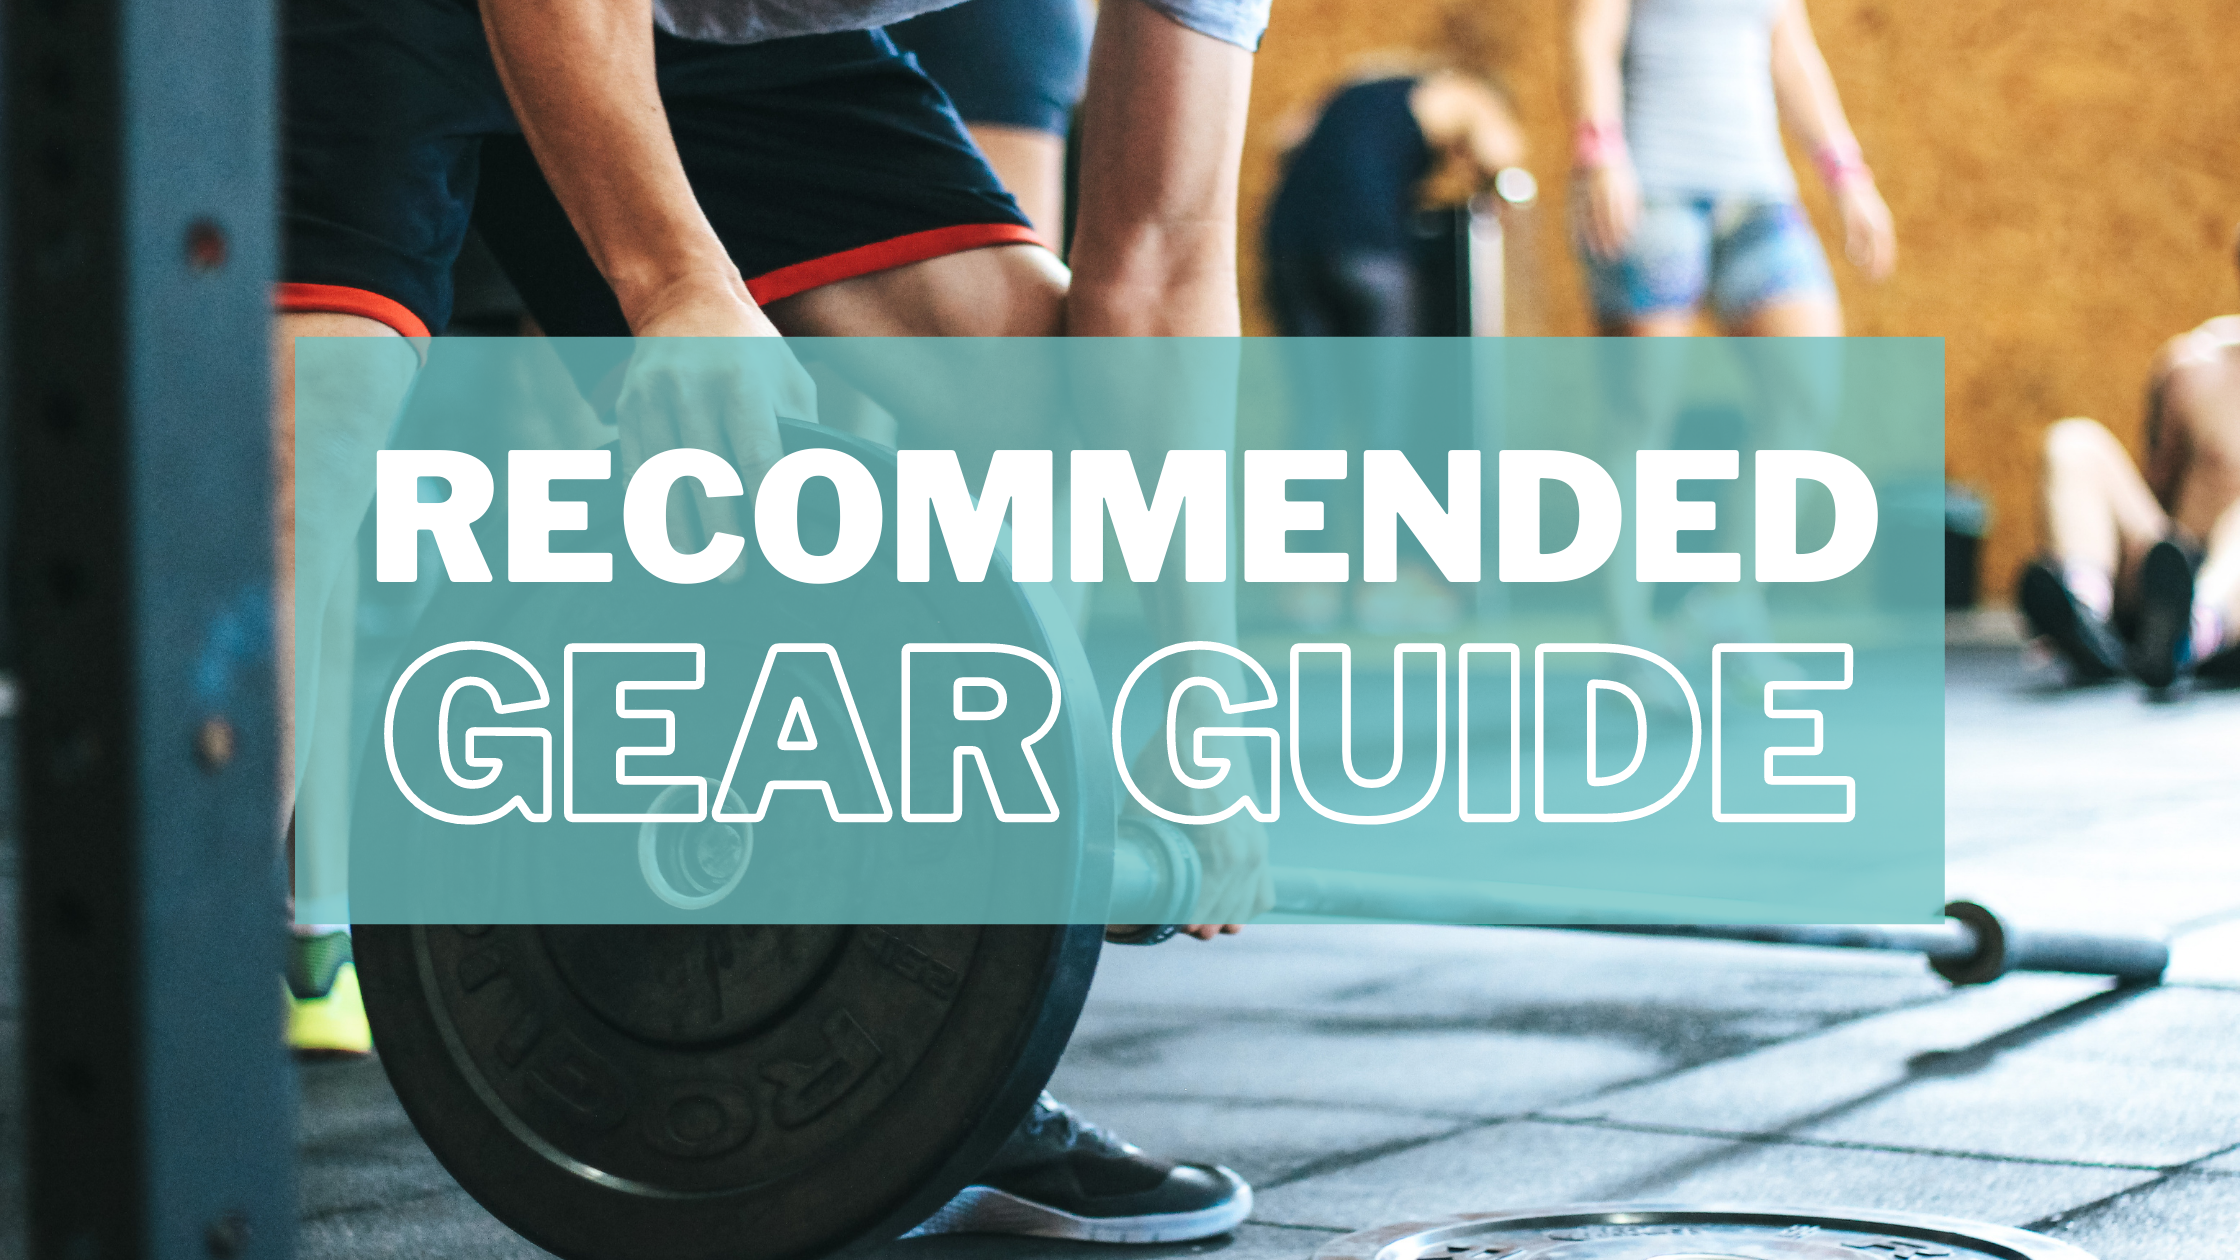 RECOMMENDED GEAR GUIDE